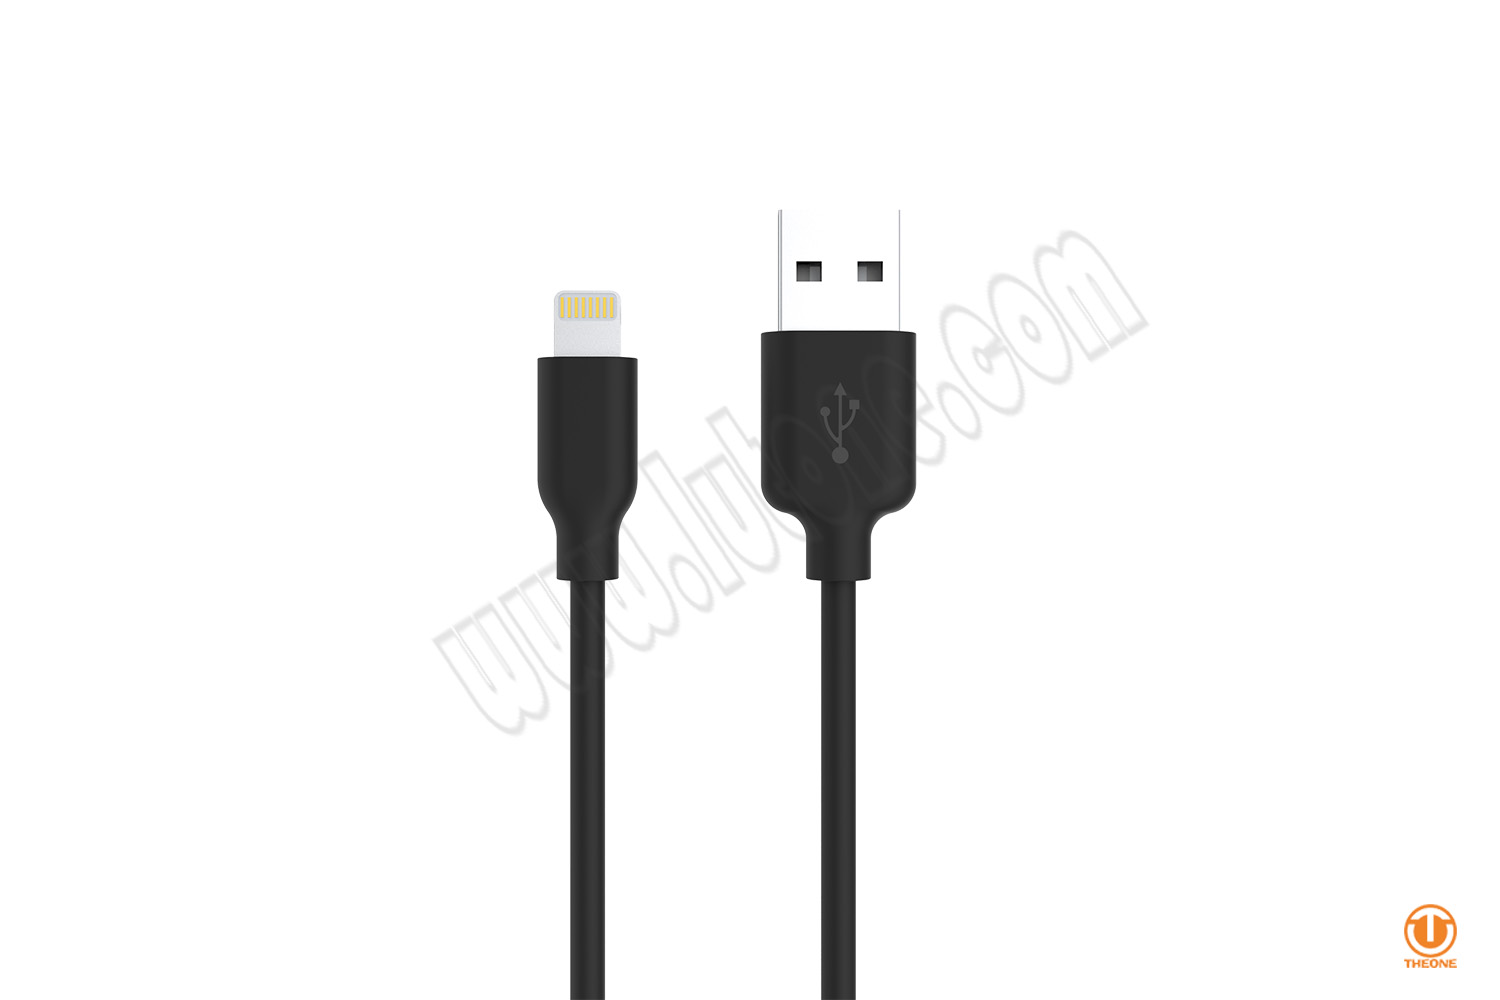 usb-c data cable